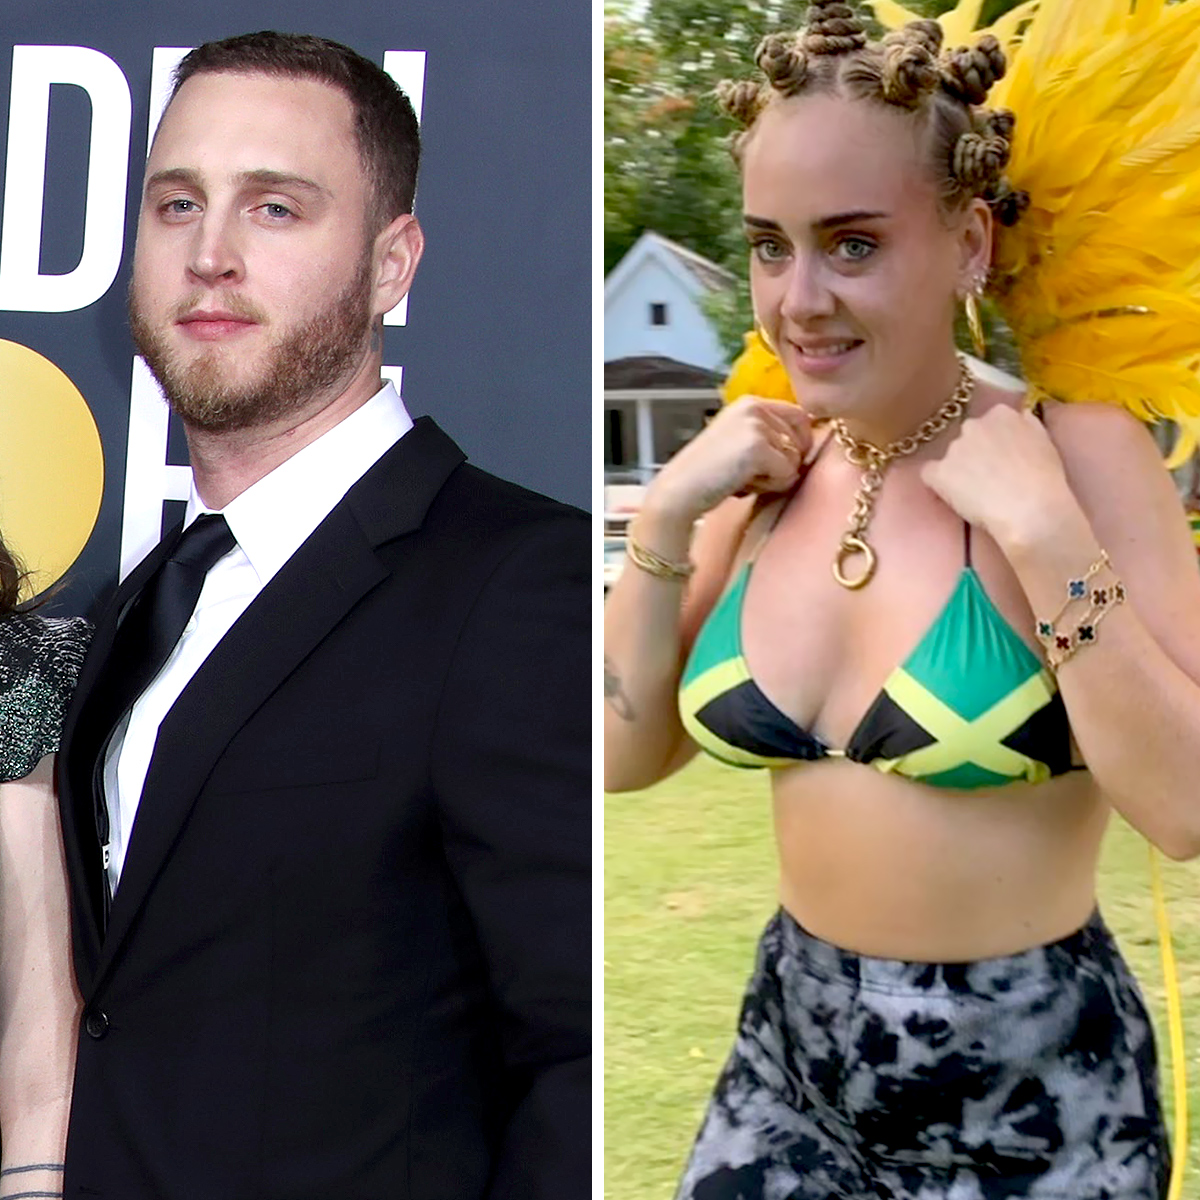 Chet Hanks Shoots His Shot With Adele After Her Bikini Photo